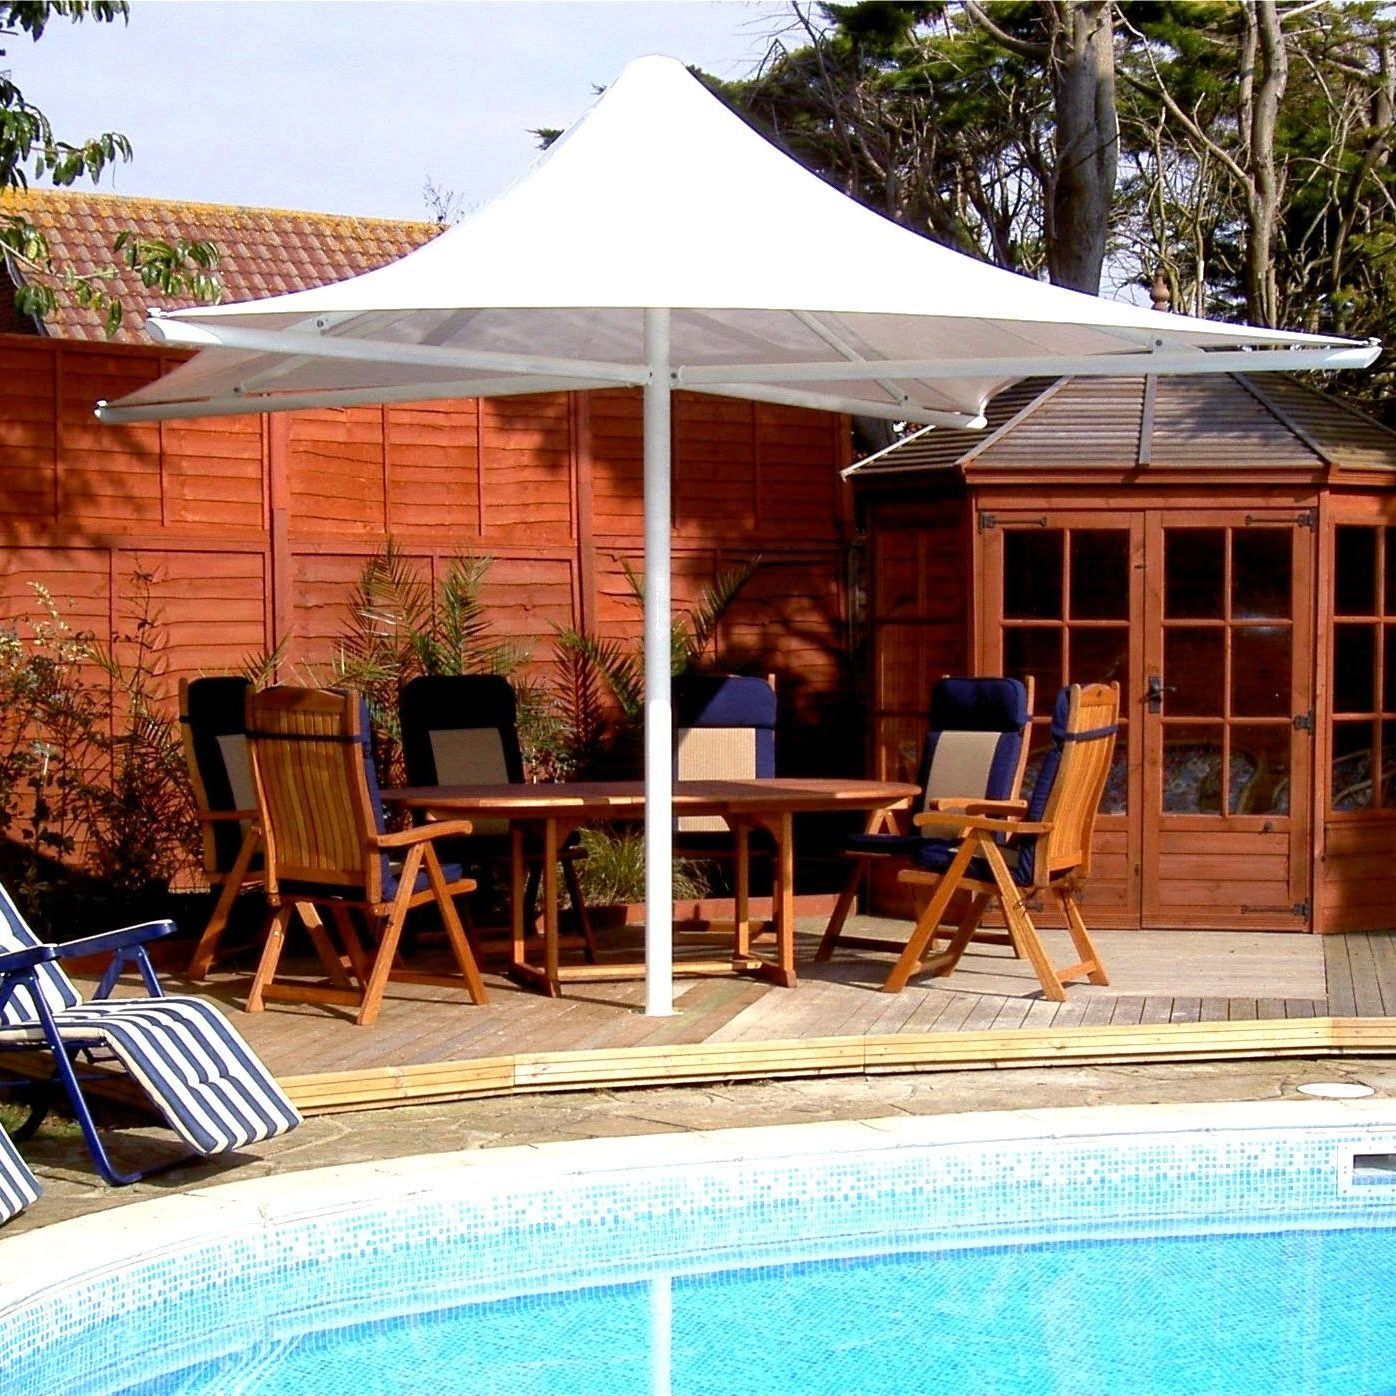 Goodwood Tensile Fabric Square Conic Canopy